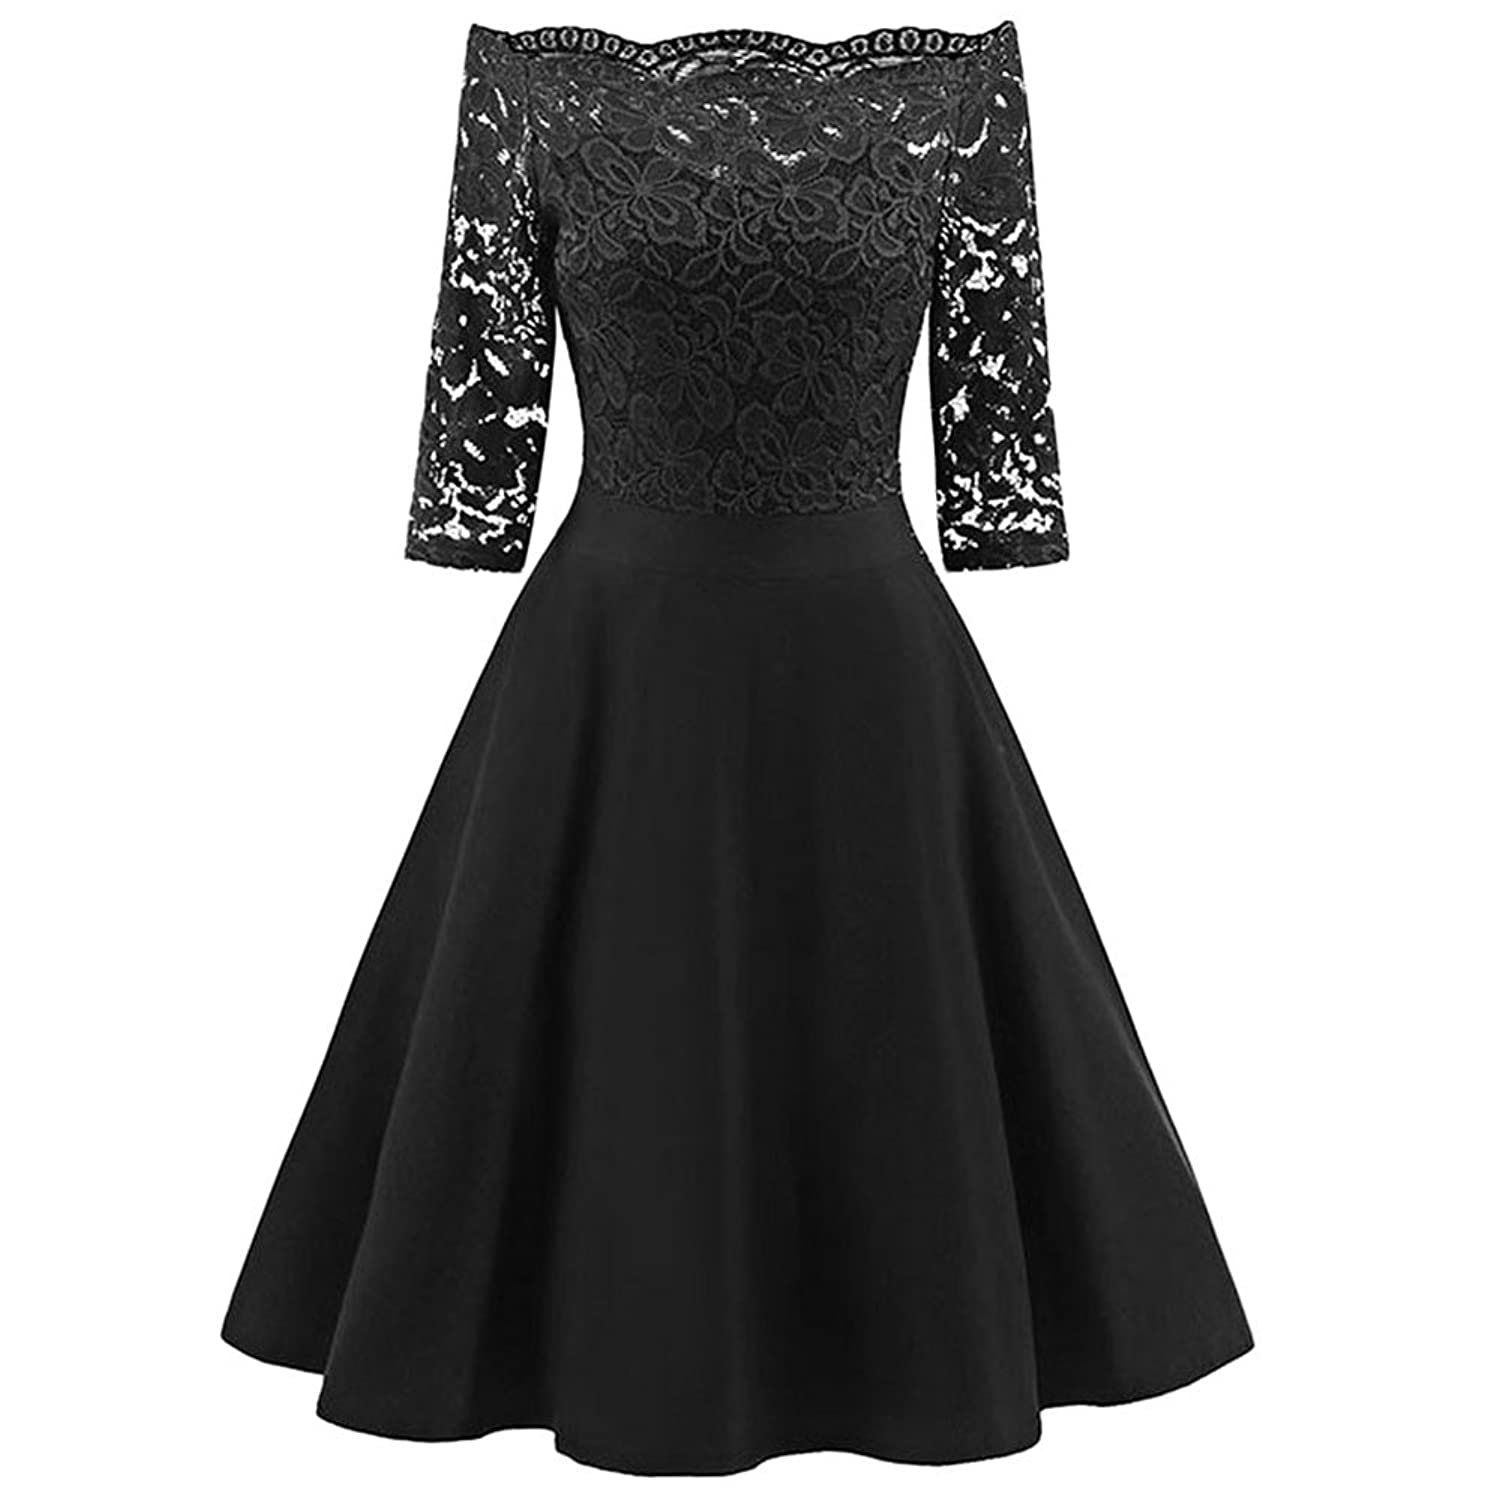 GAMISS Women's Vintage Lace Dress Floral 3/4 Sleeve Cocktail Dress (S-2XL)